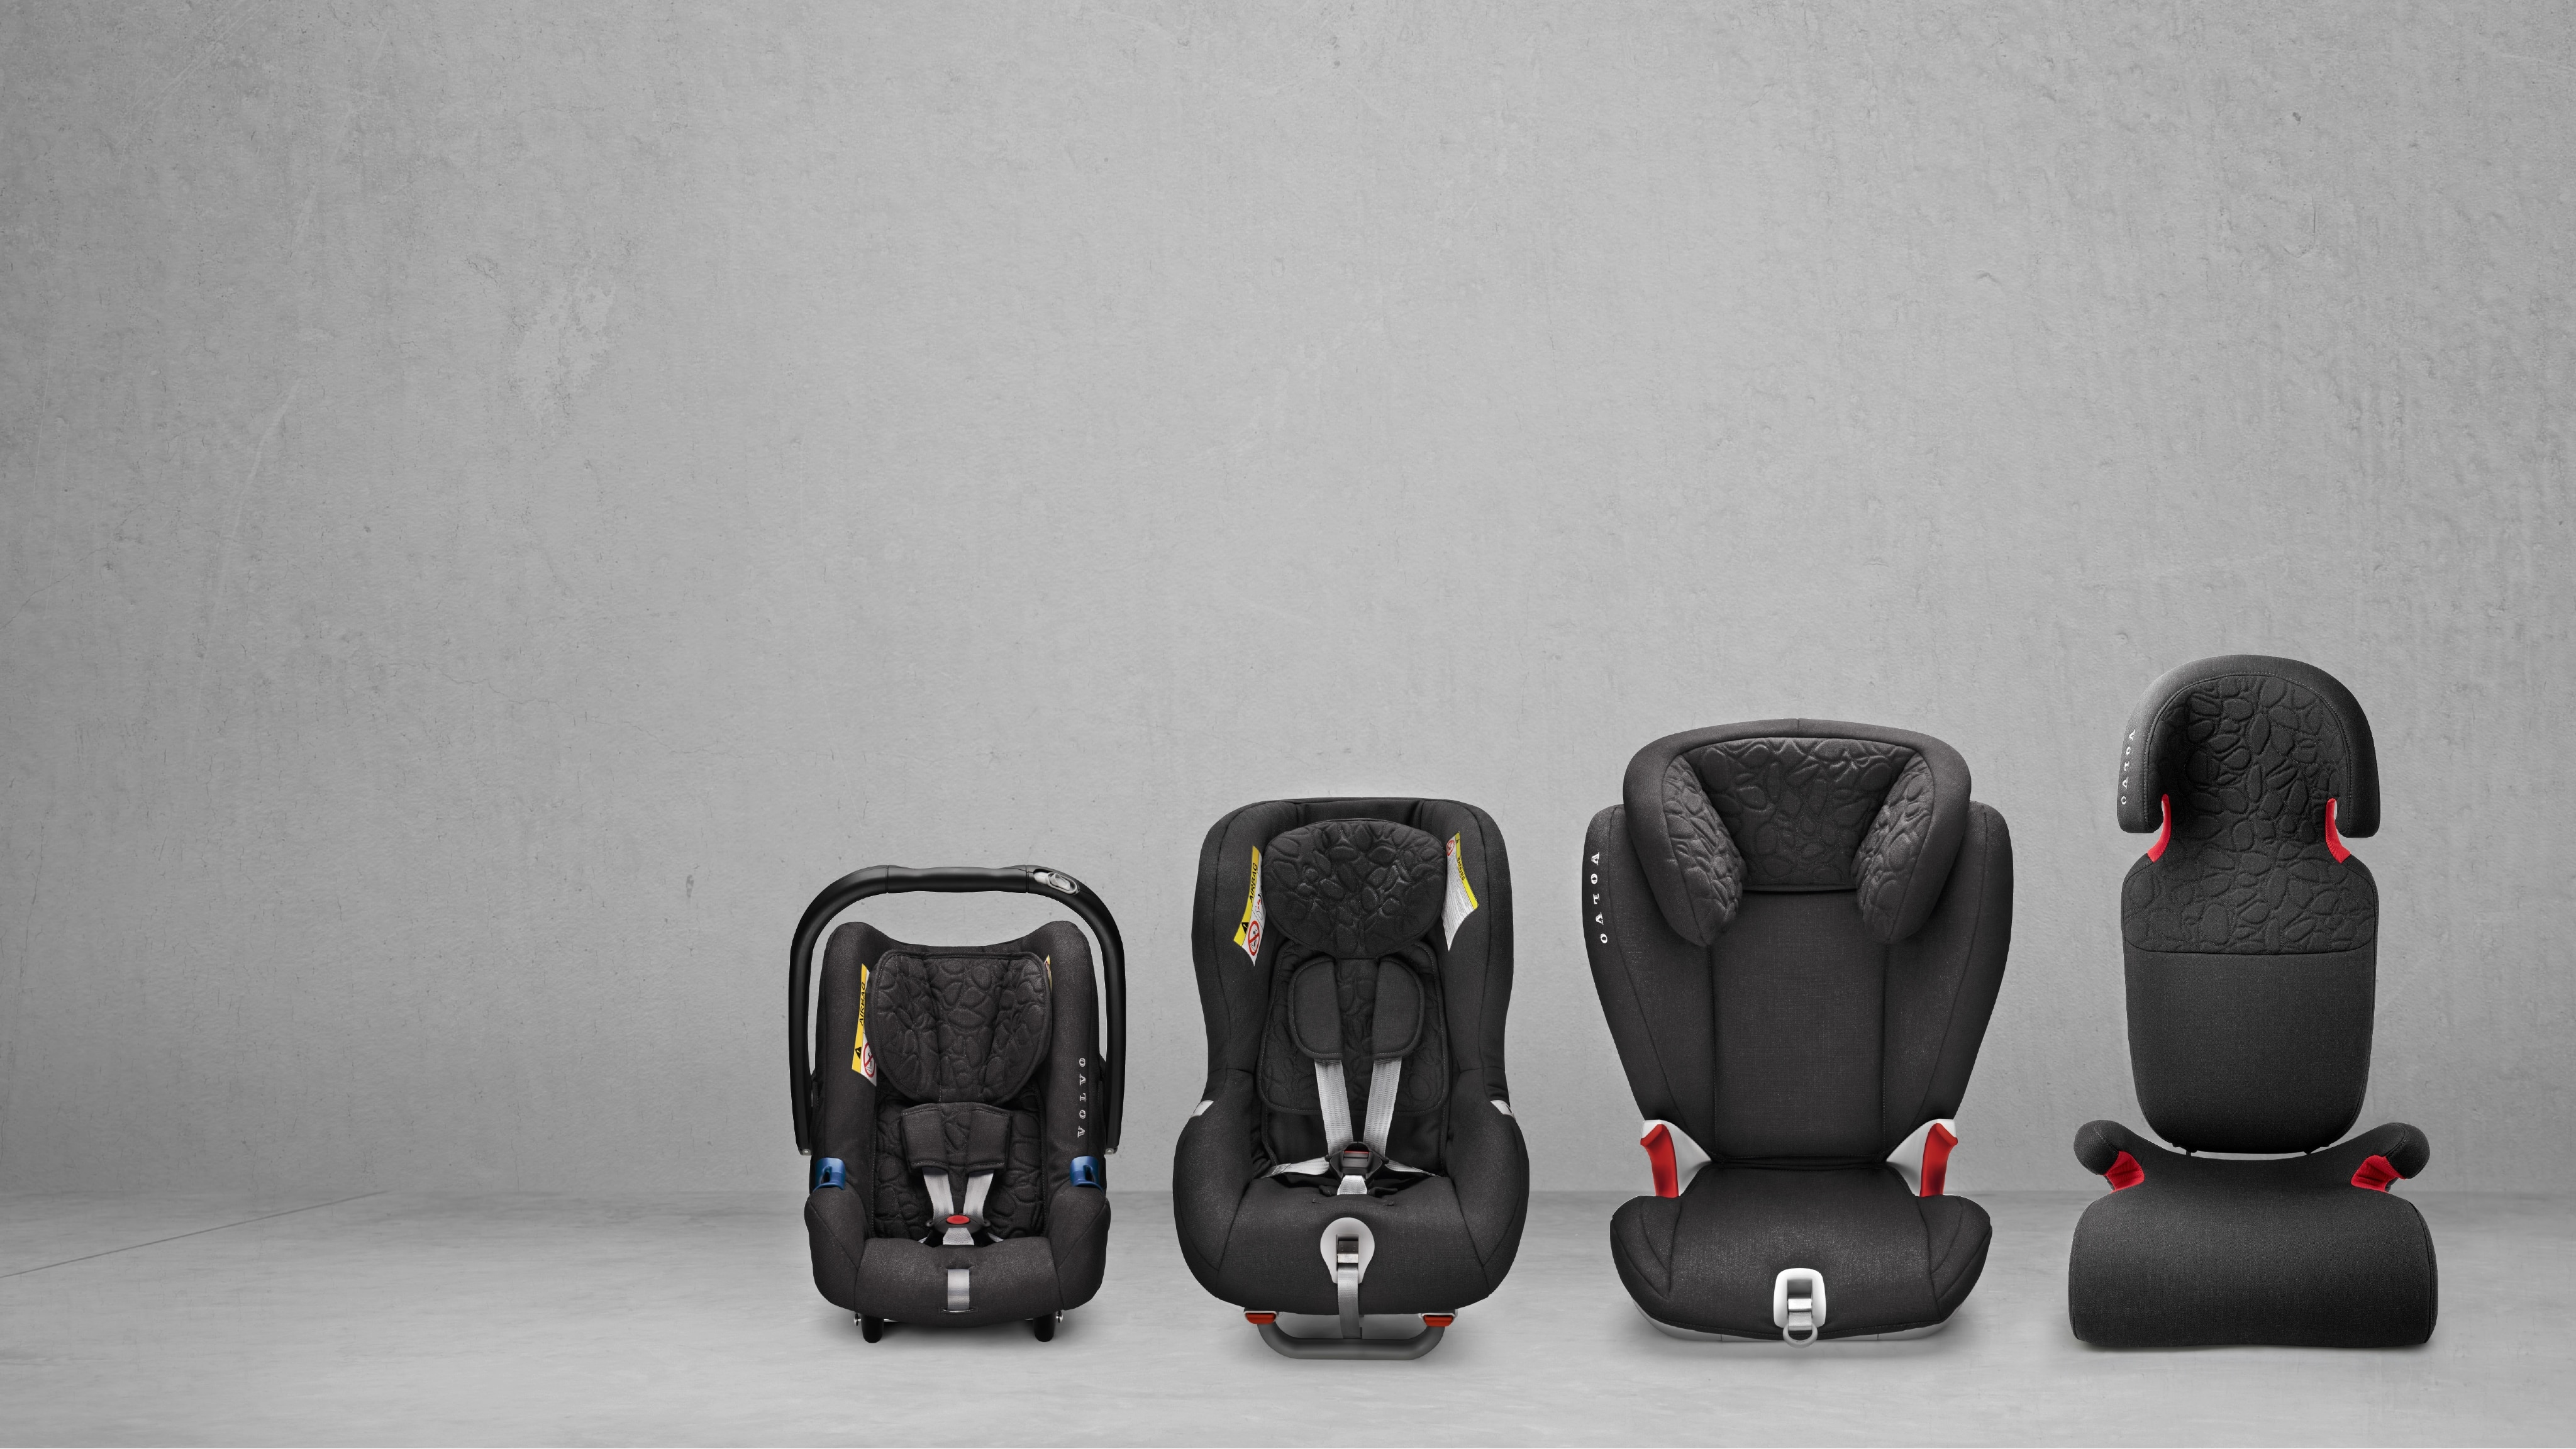 The Child Seats | Volvo Cars